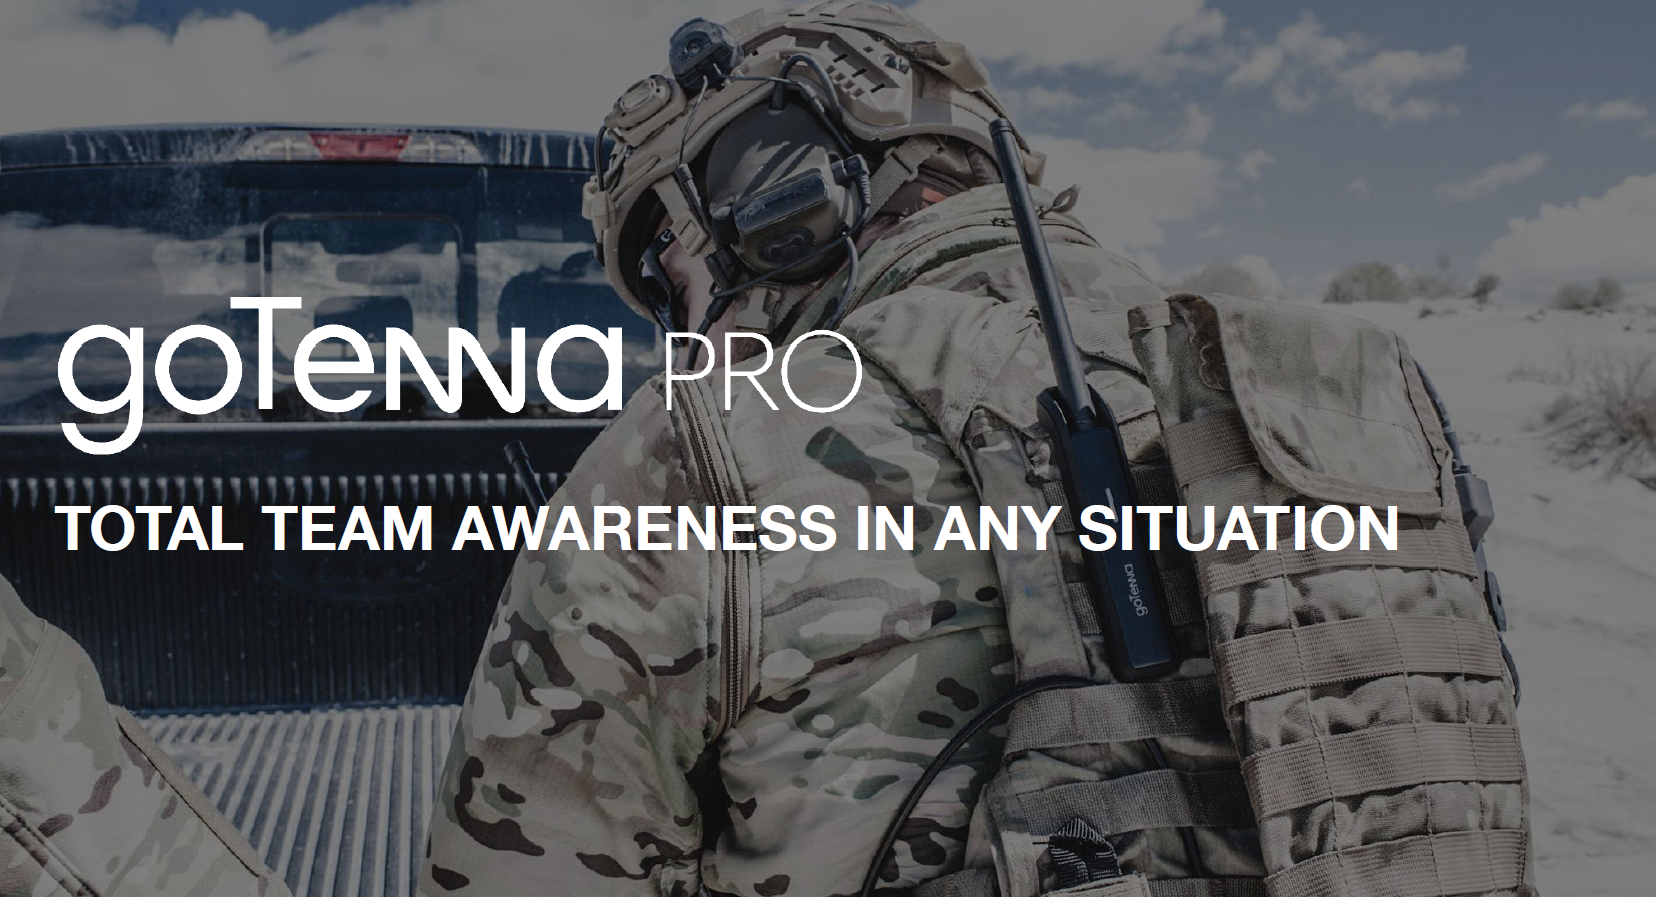 goTenna Pro: Total Team Awareness in Any Situation